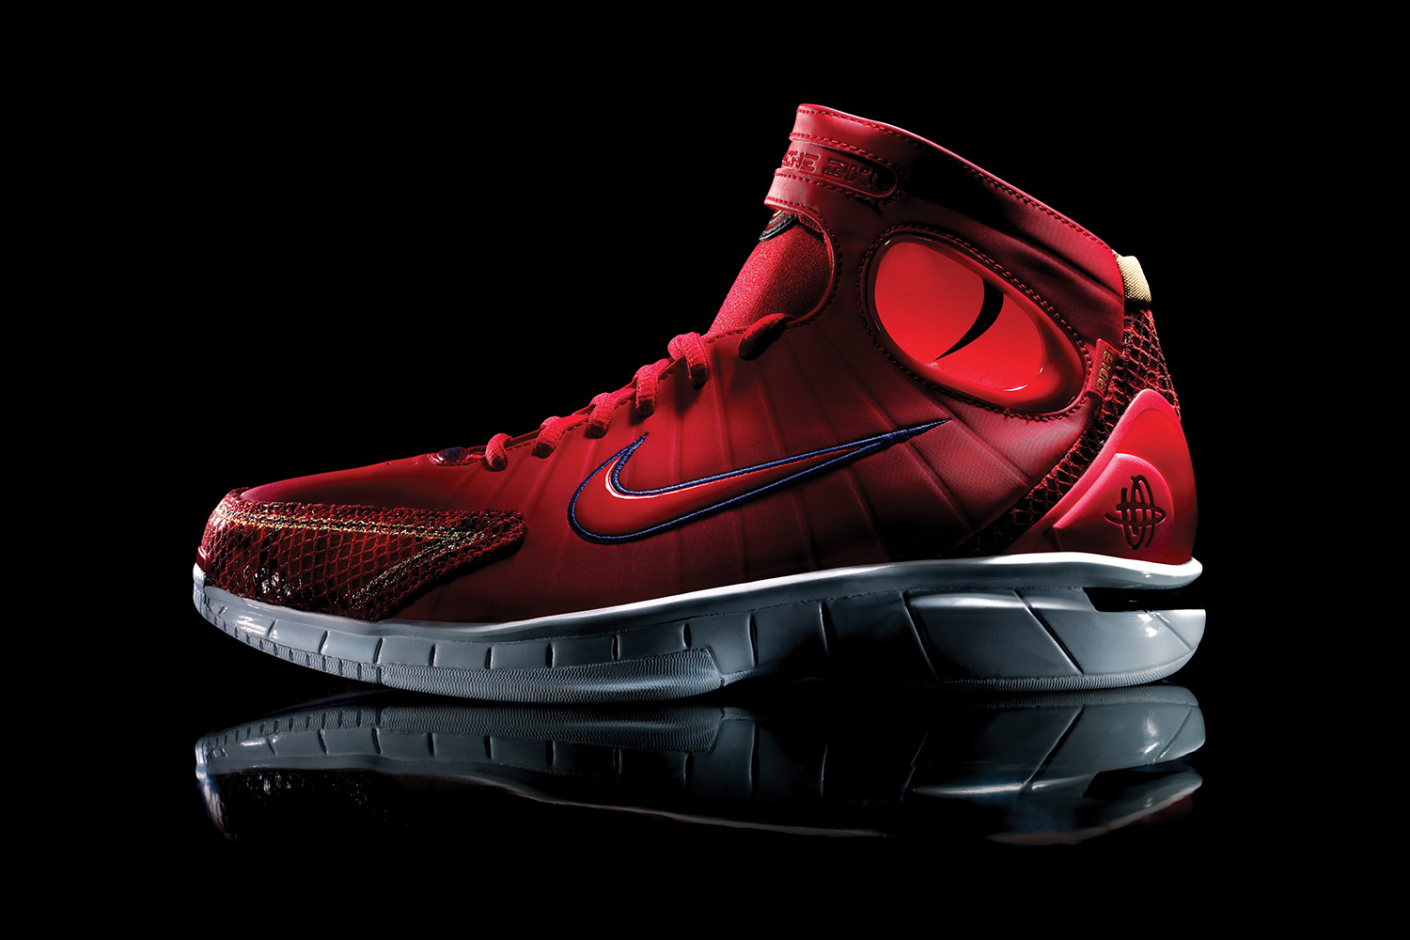 Pix For Upcoming Nike Basketball Shoes 2013 | Fashion's ...